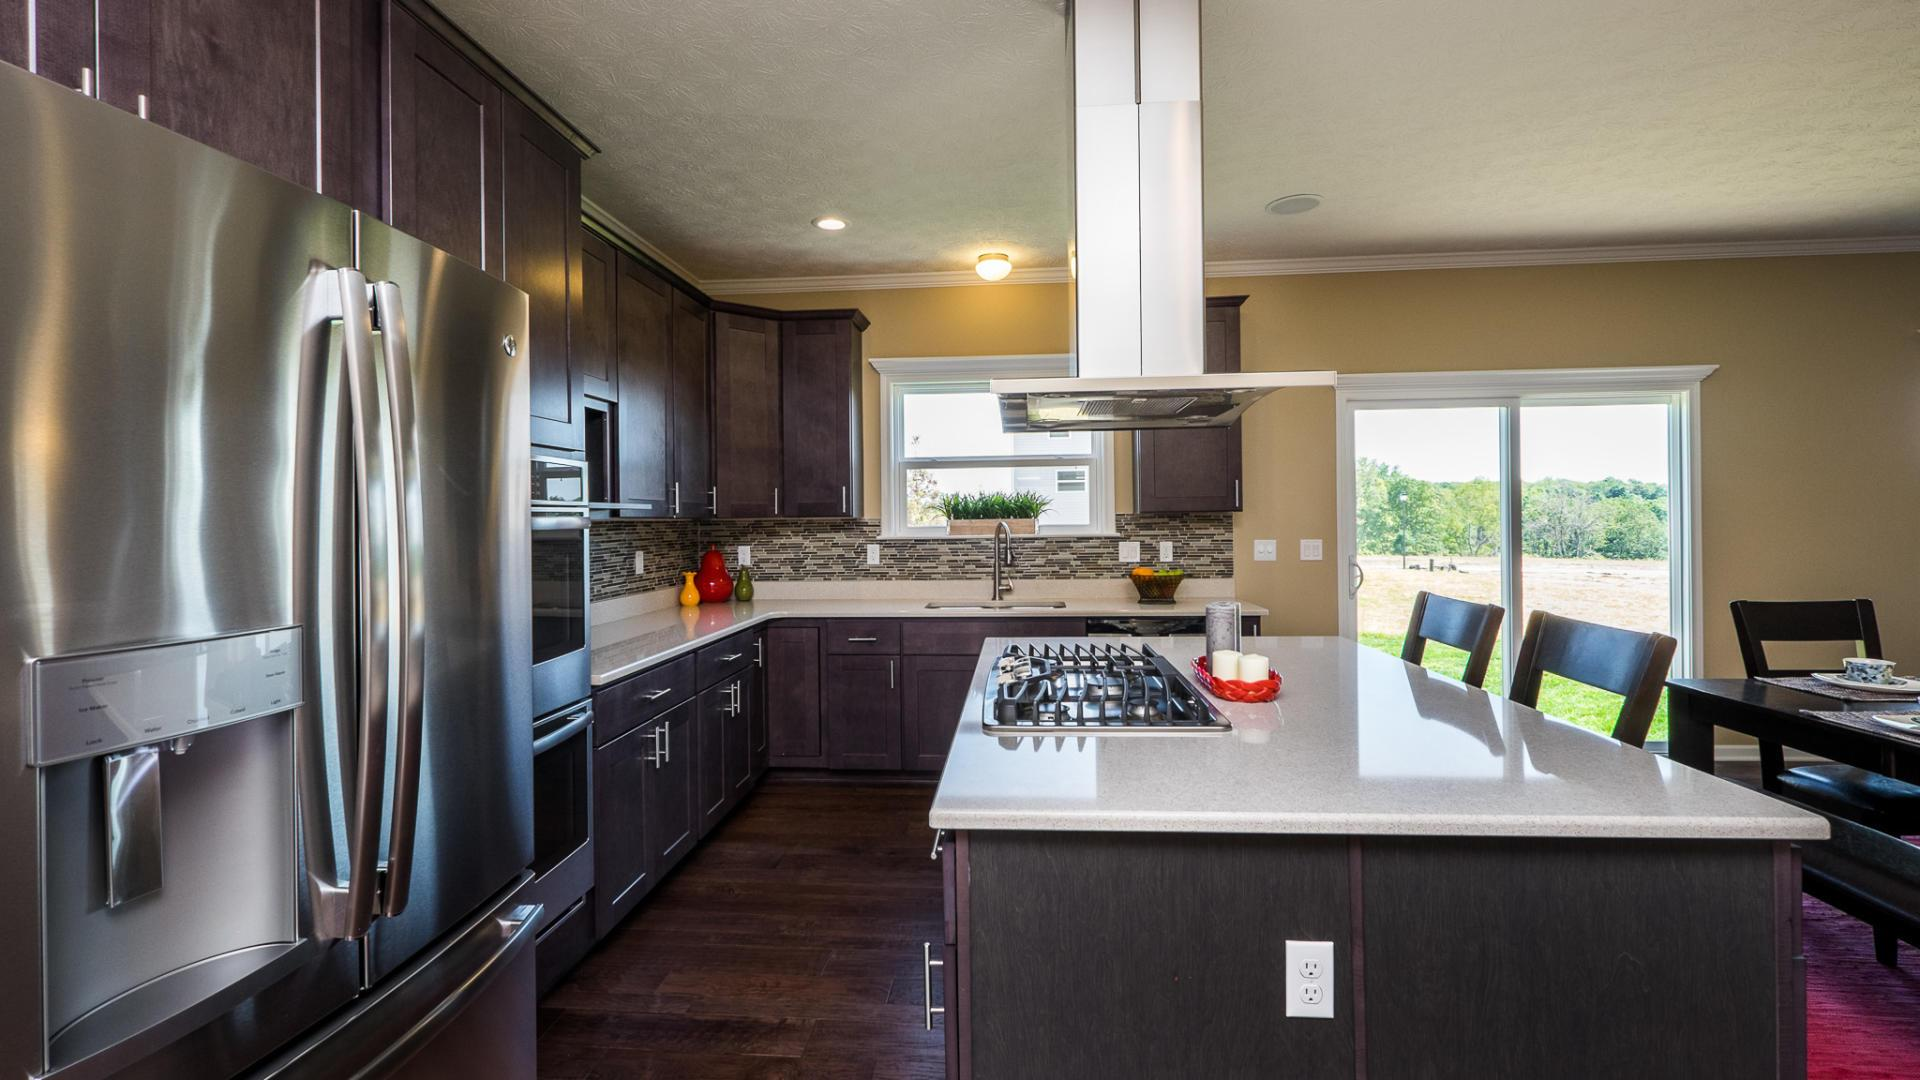 Kitchen featured in the Birmingham By Maronda Homes in Pittsburgh, PA